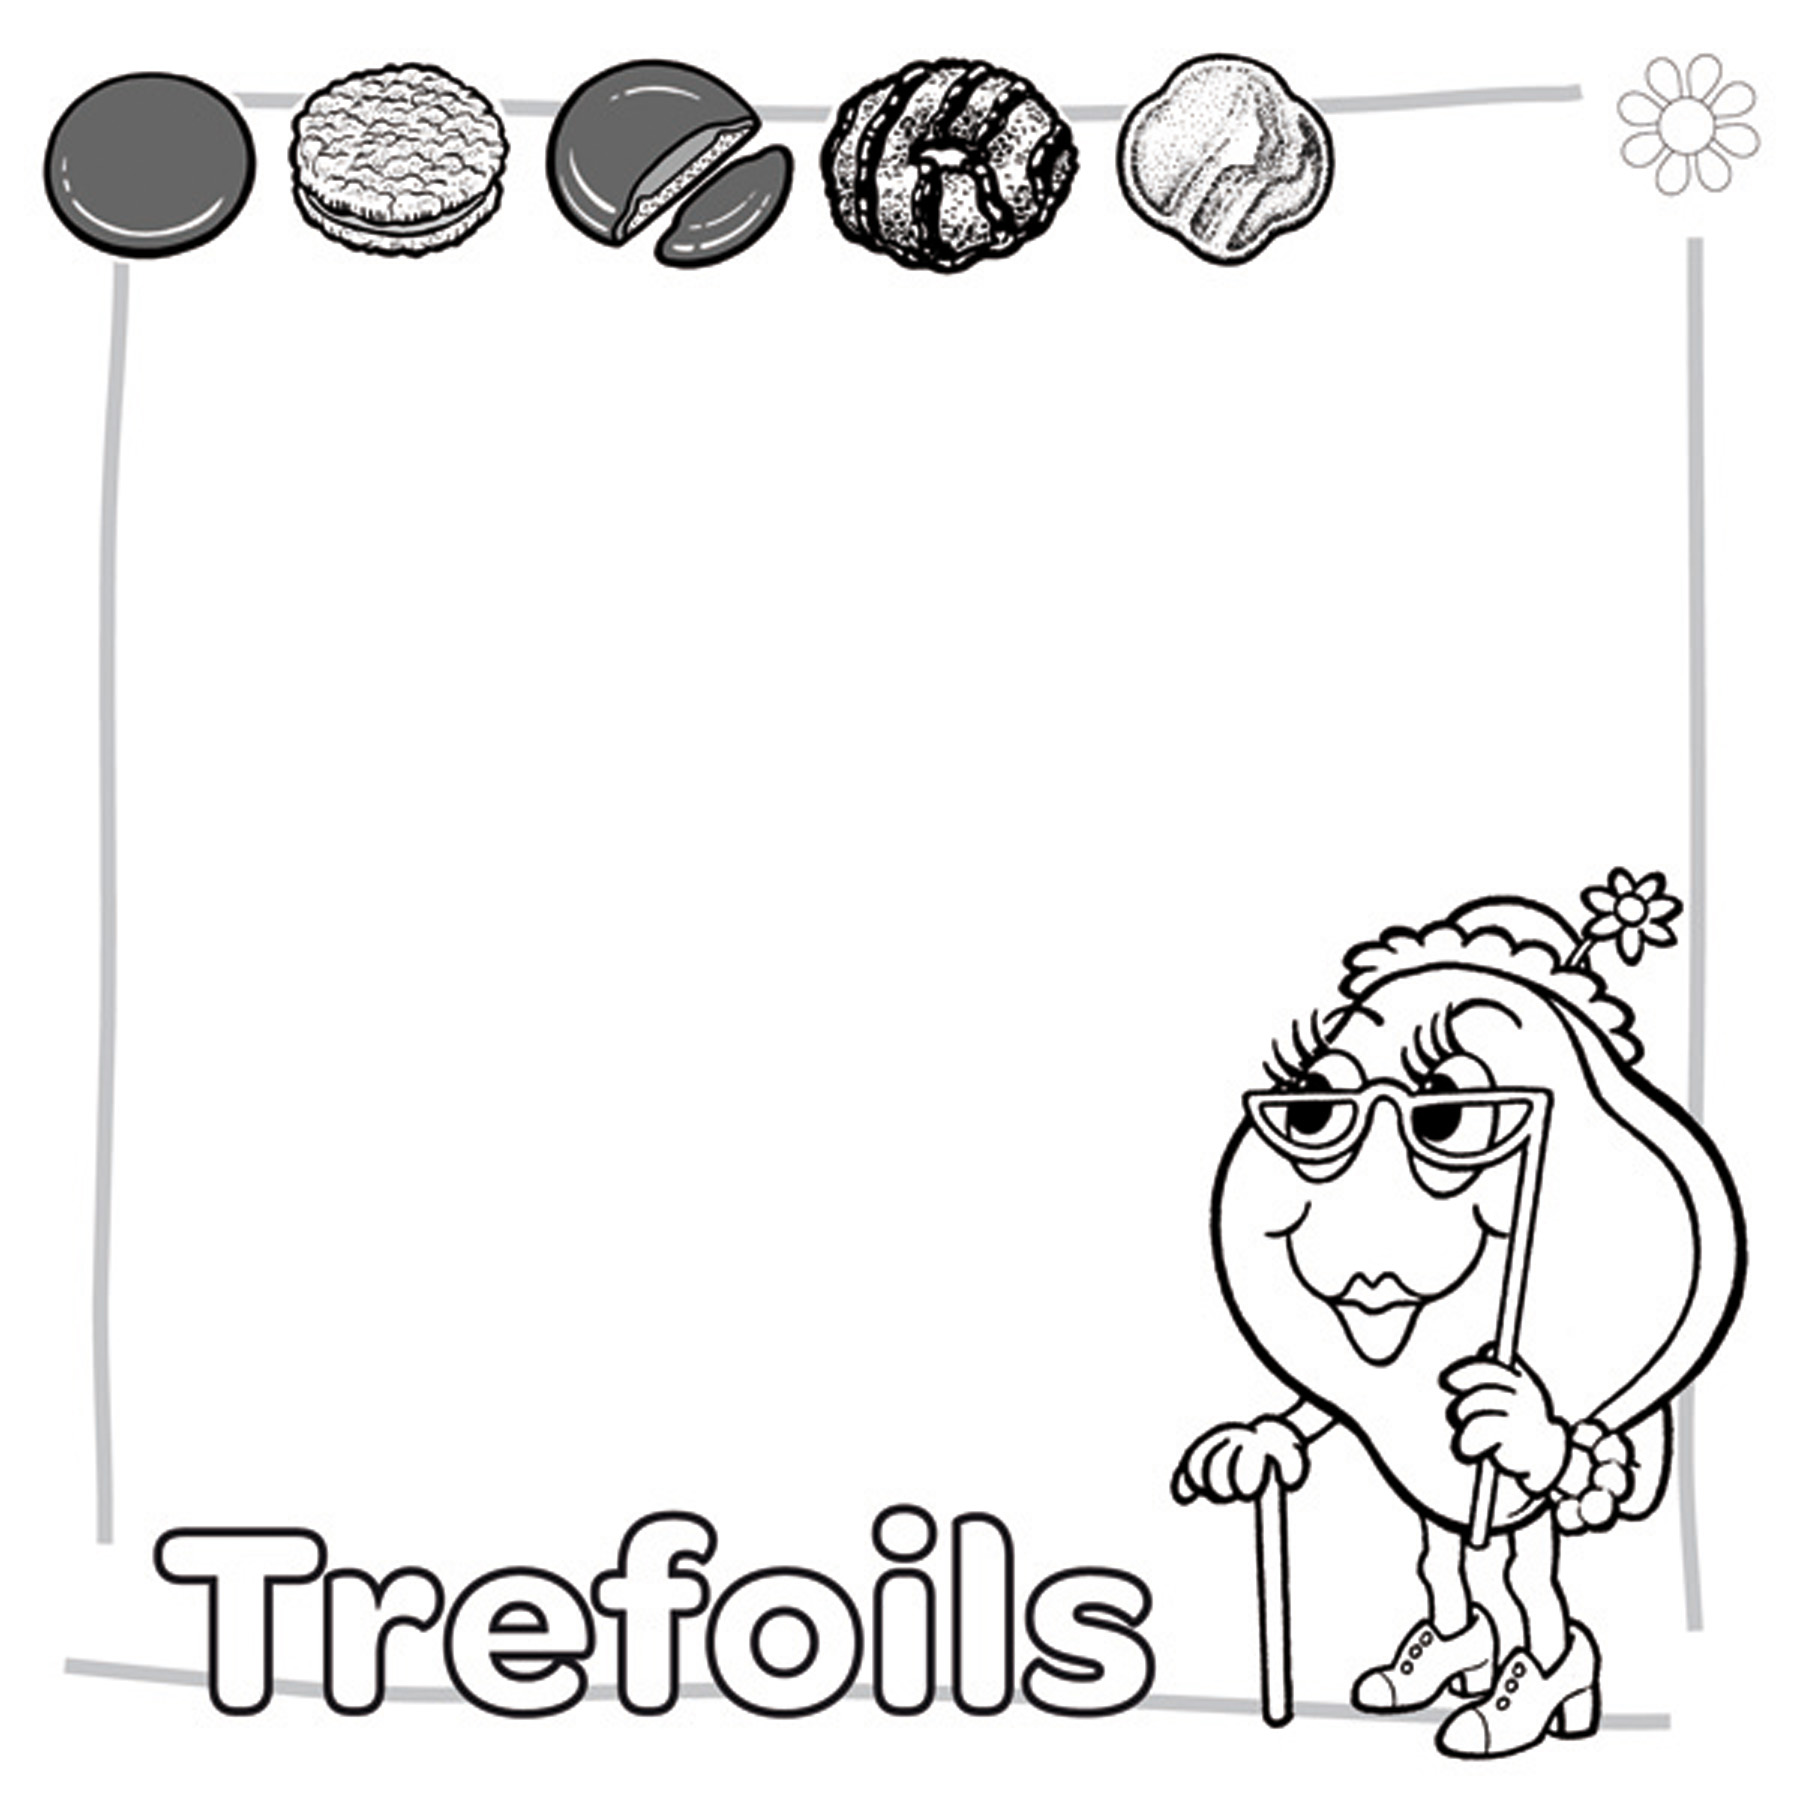 683x1024 girl scout cookies coloring pages usedautoclub 1800x1800 little brownie bakers - Girl Scout Coloring Pages